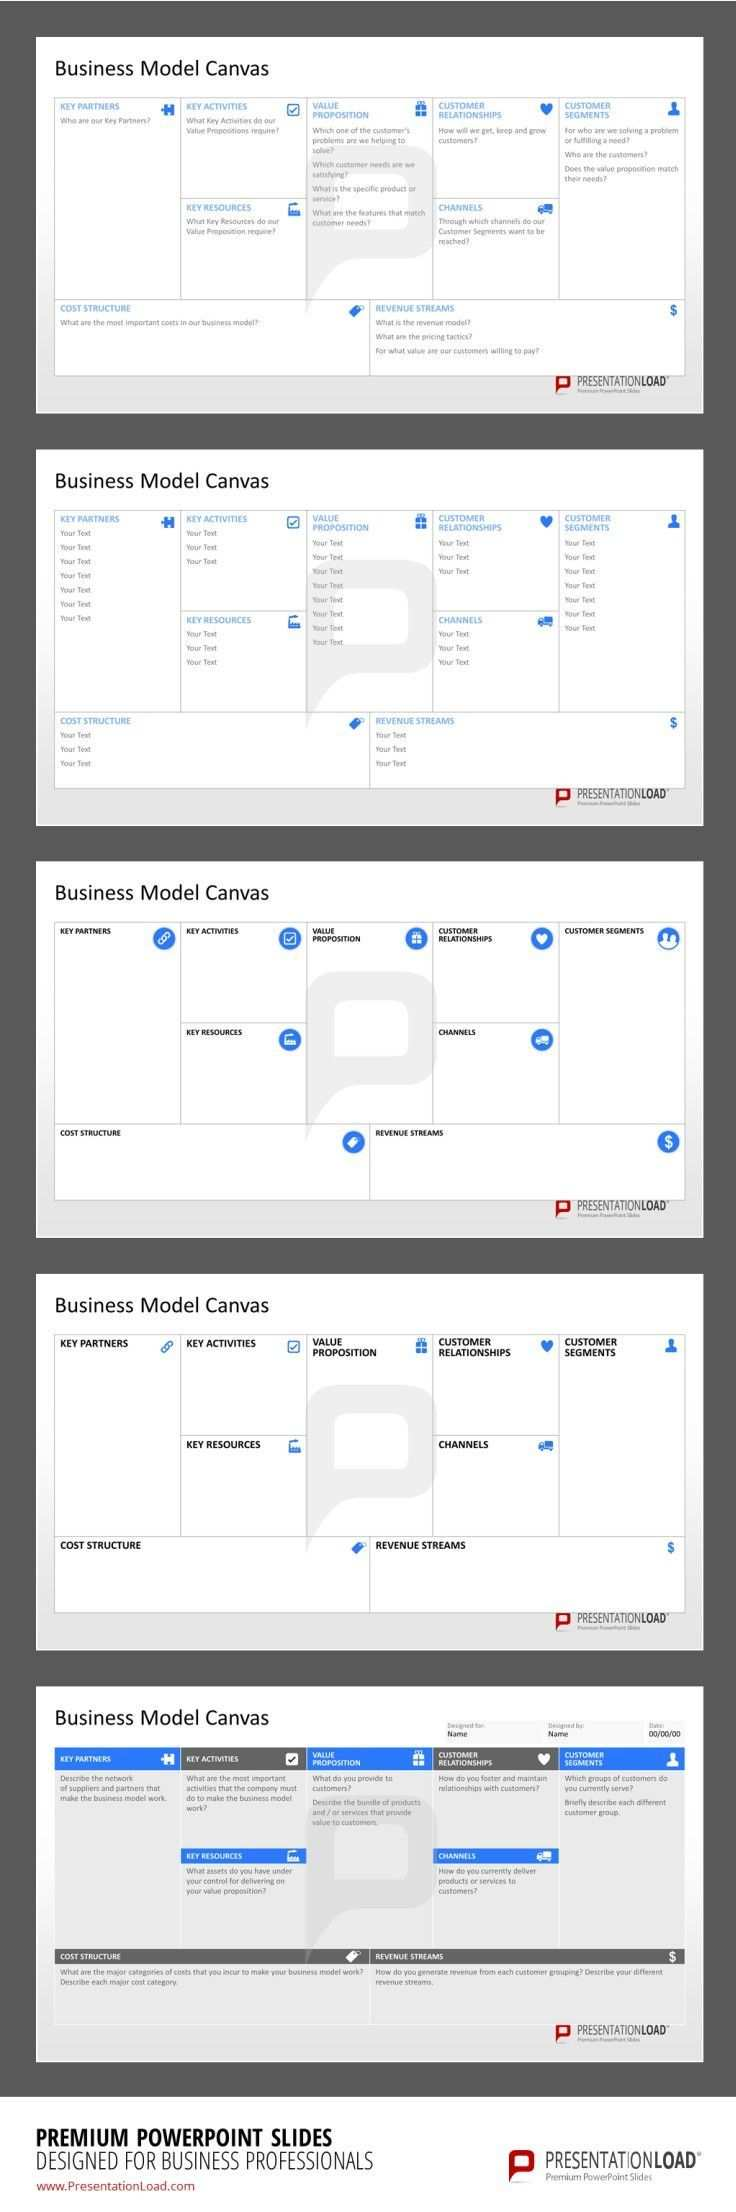 Business Model Canvas Powerpoint Template To Strategically Plan